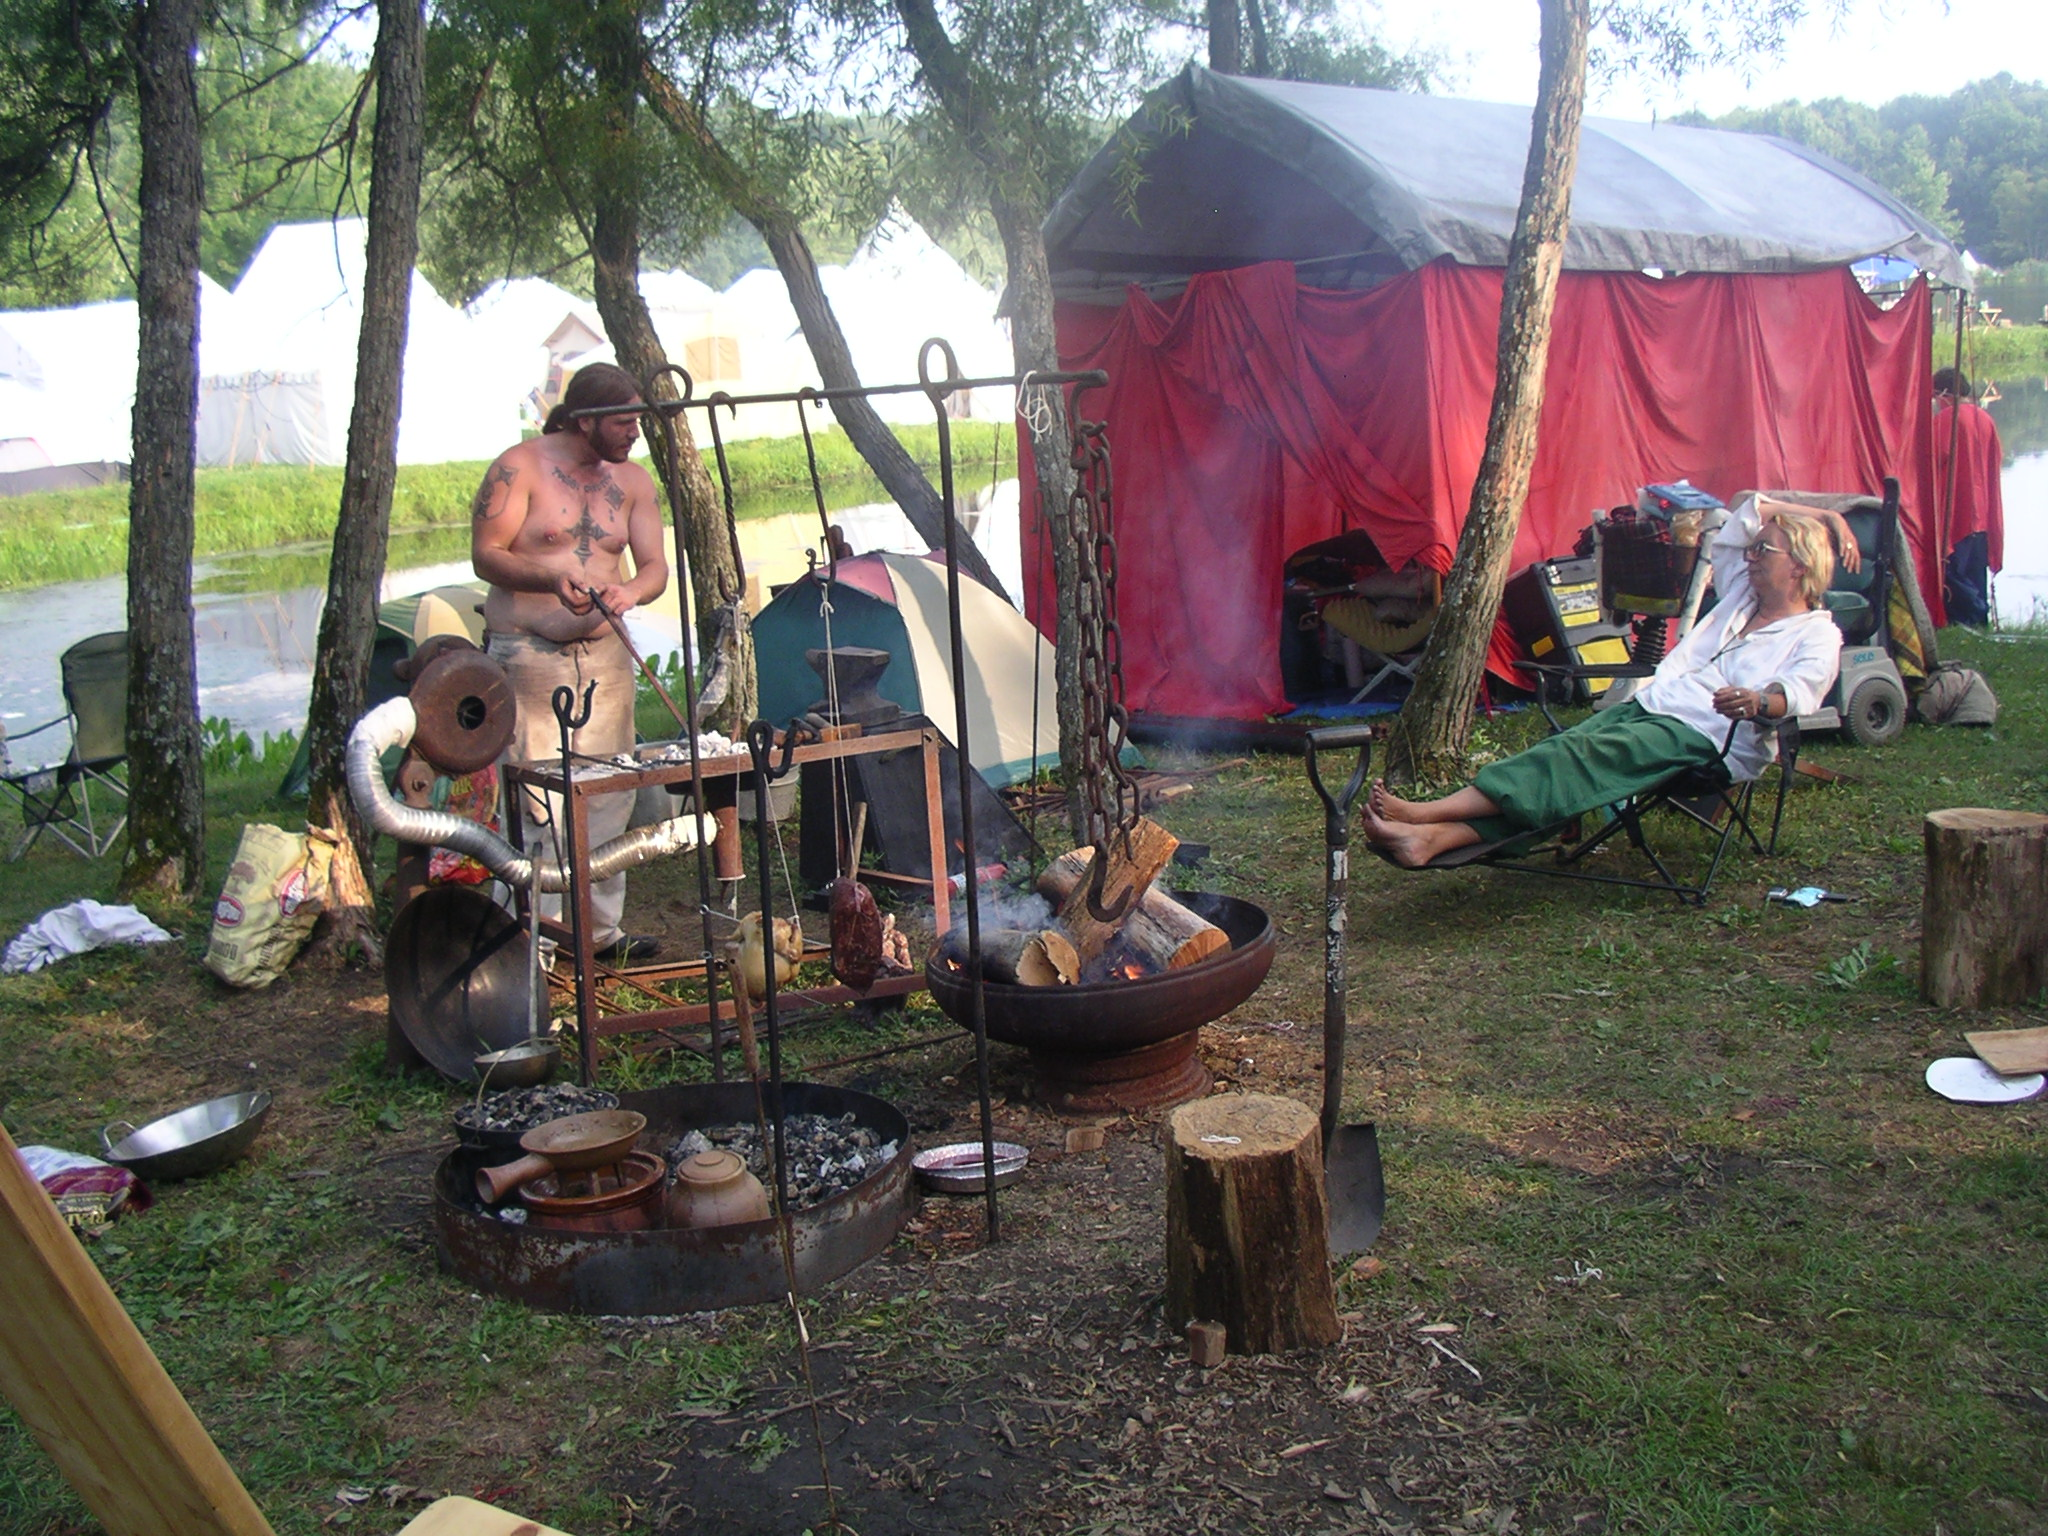 pennsic cooking over coals with pottery 2007